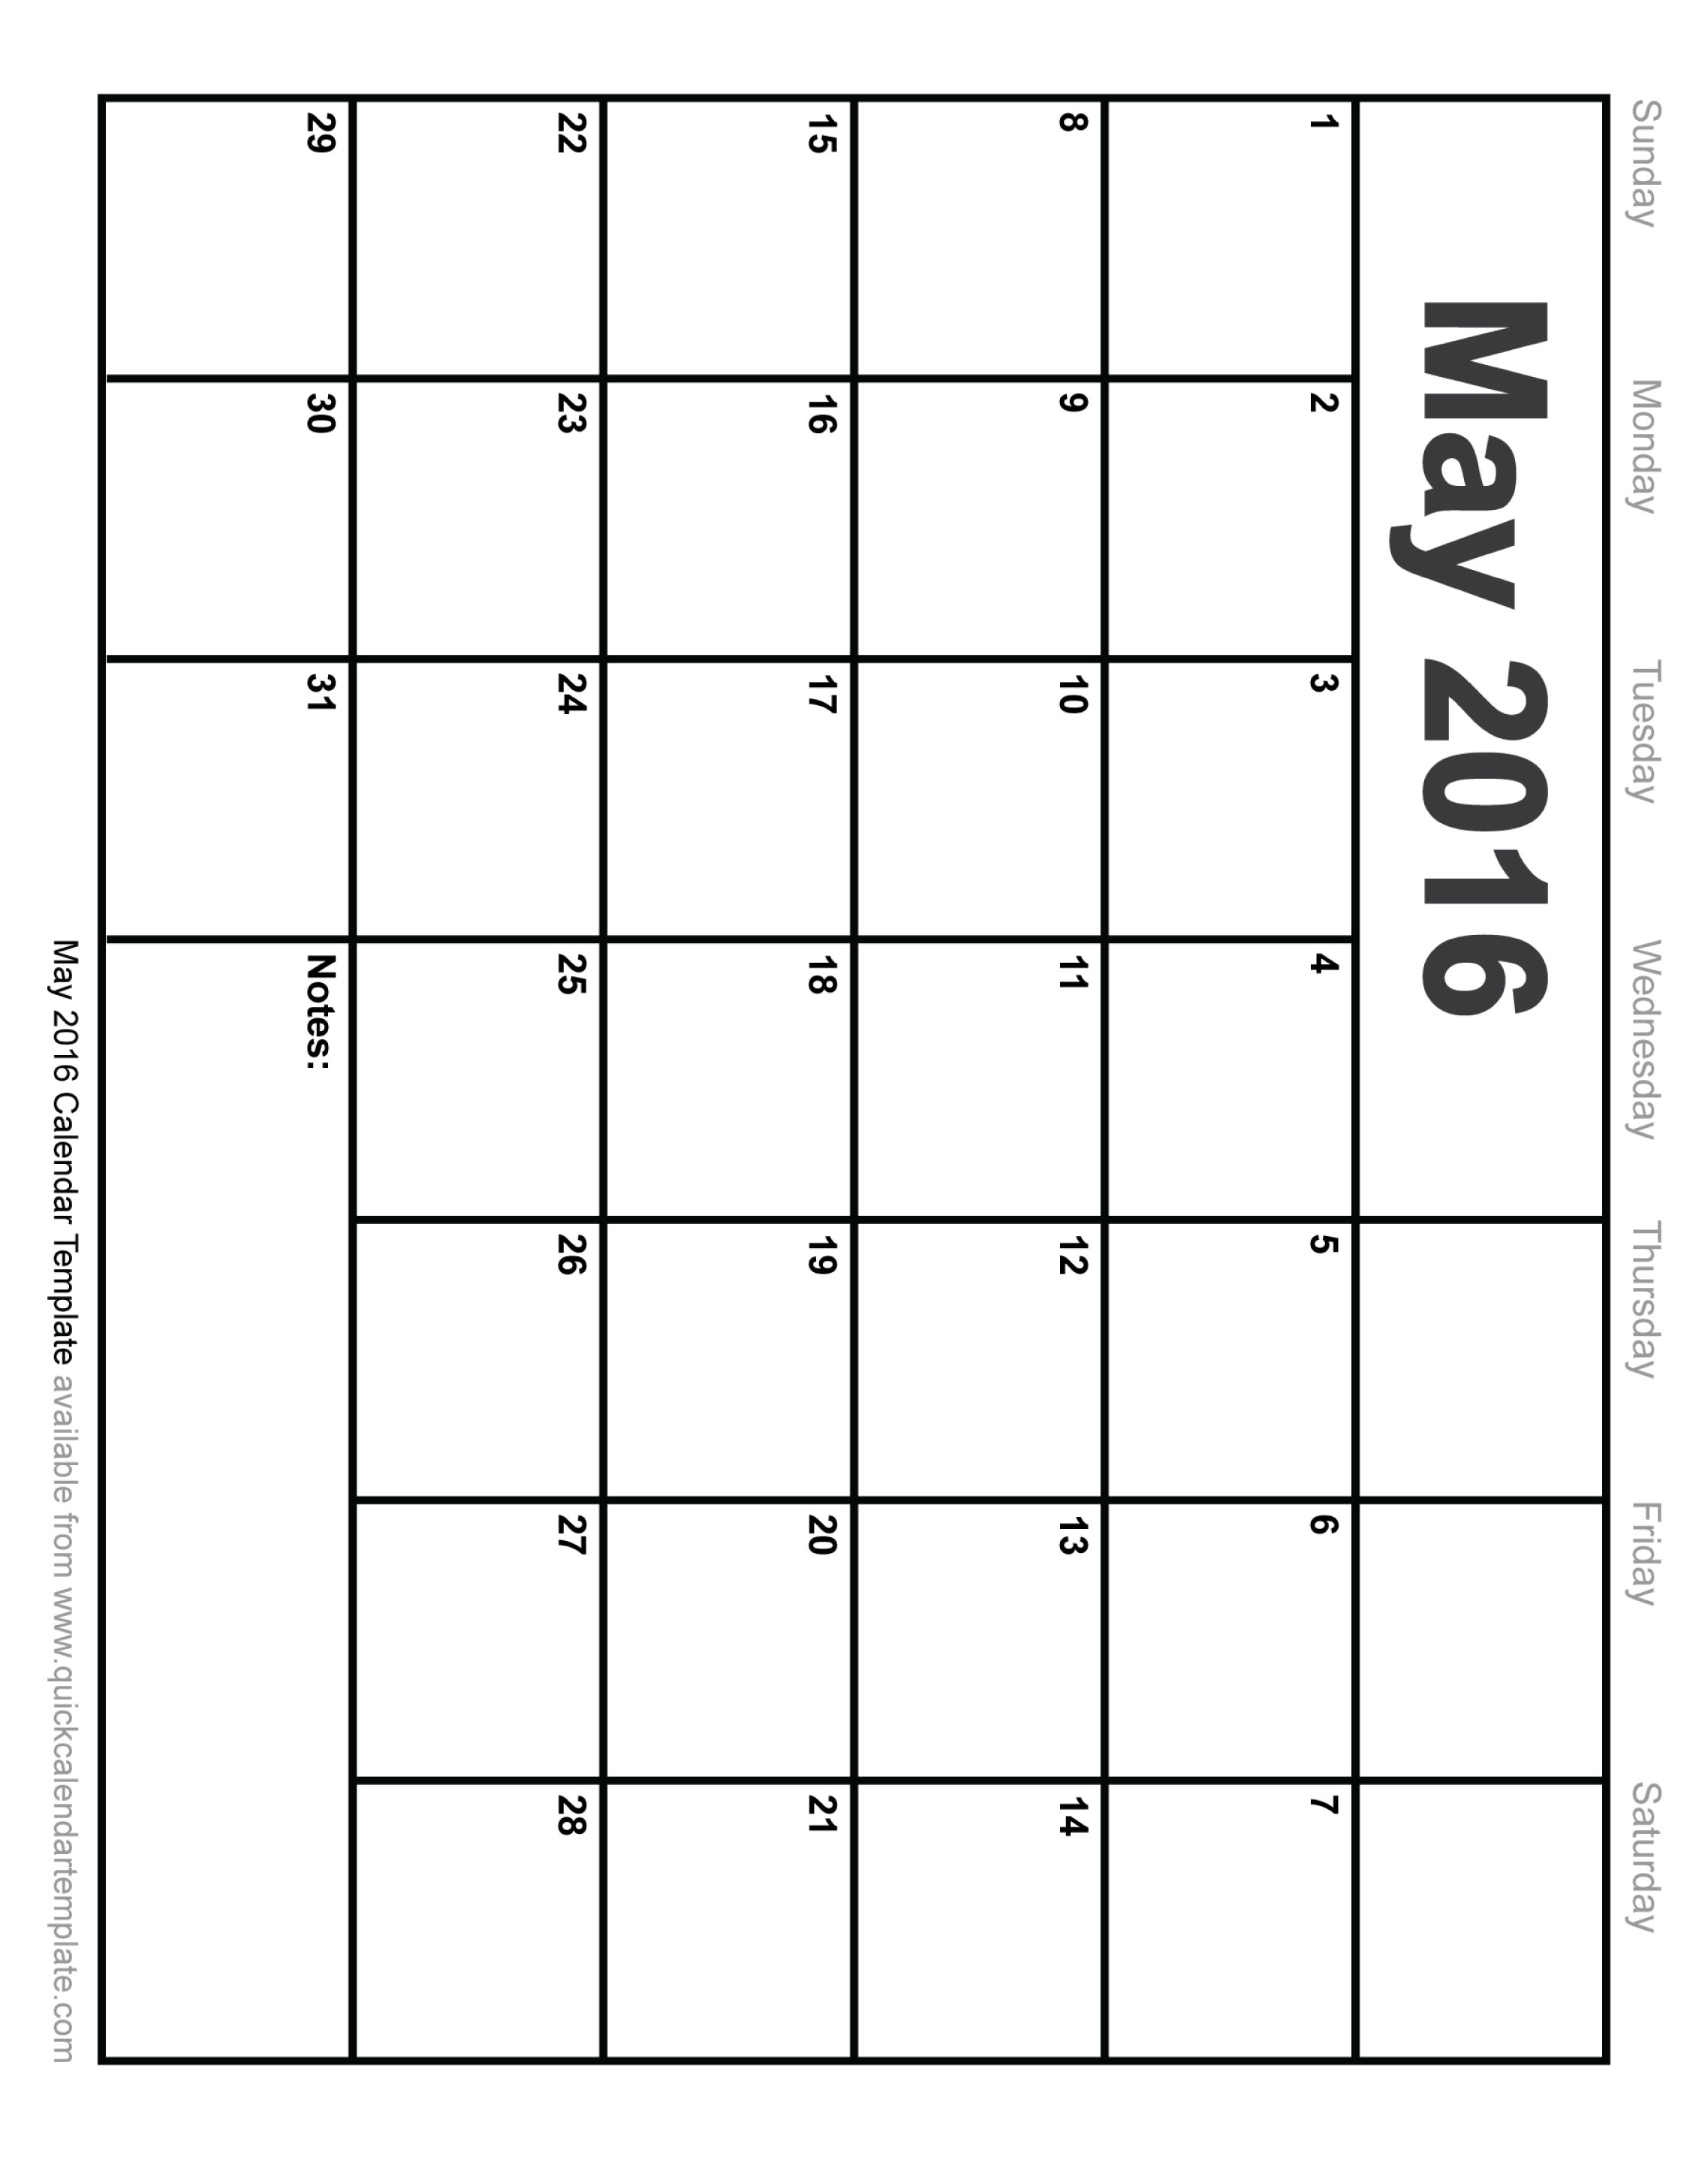 Calendar clipart bw may 2016 clipart freeuse stock Calendar clipart bw may 2016 - ClipartFest clipart freeuse stock